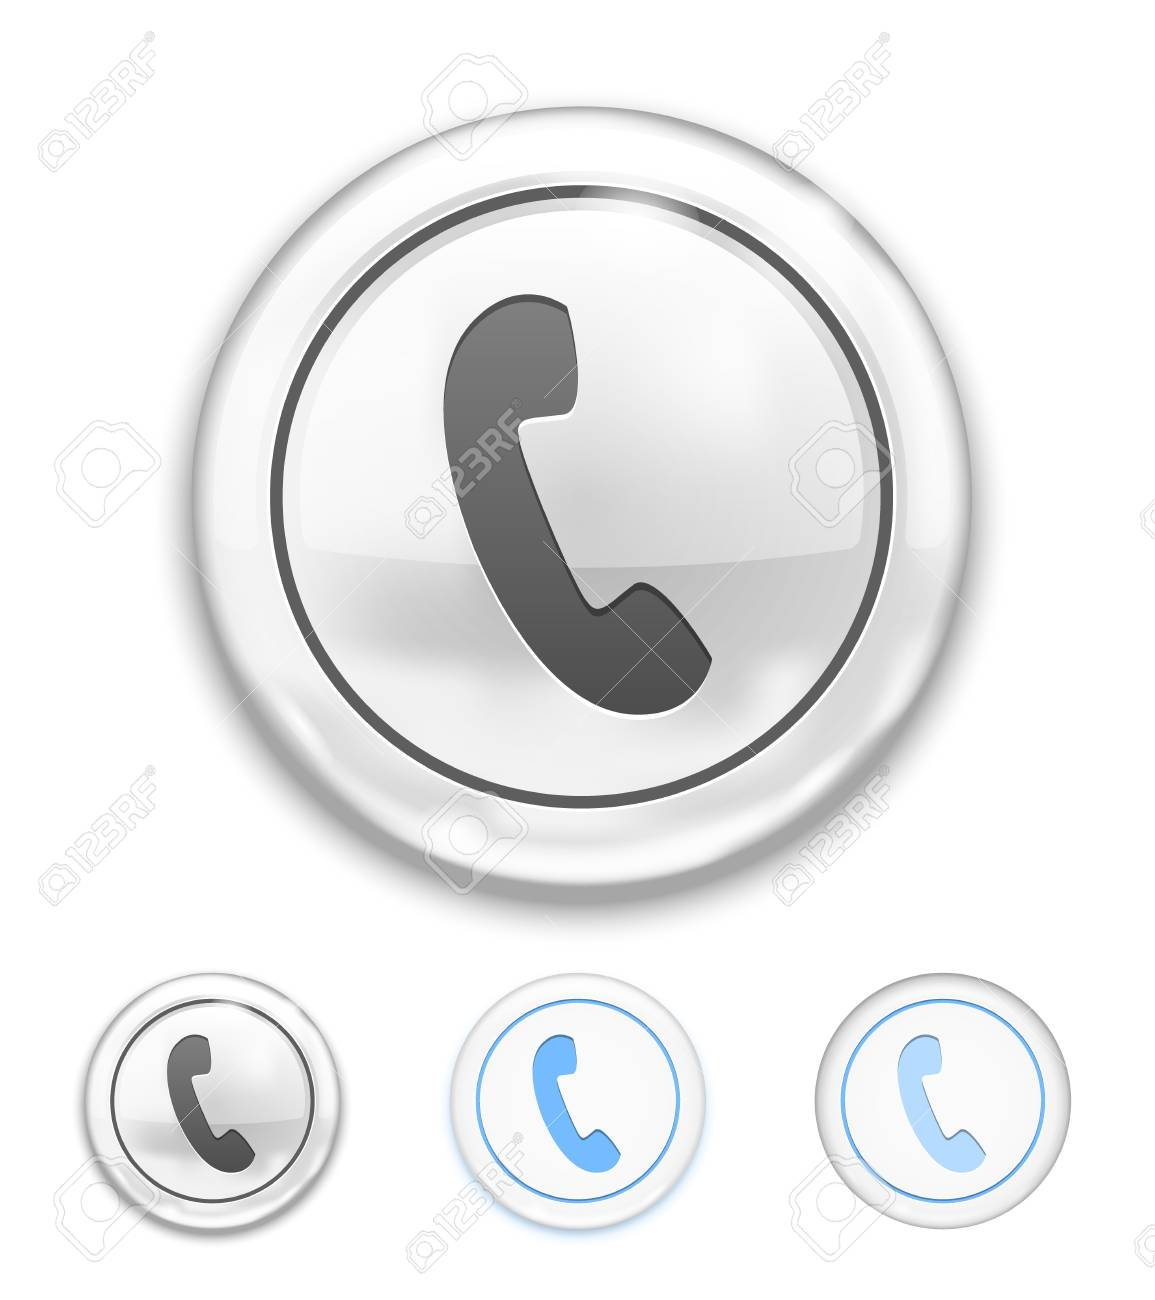 Vector Telephone Icon on Button on white background Stock Vector - 22095985